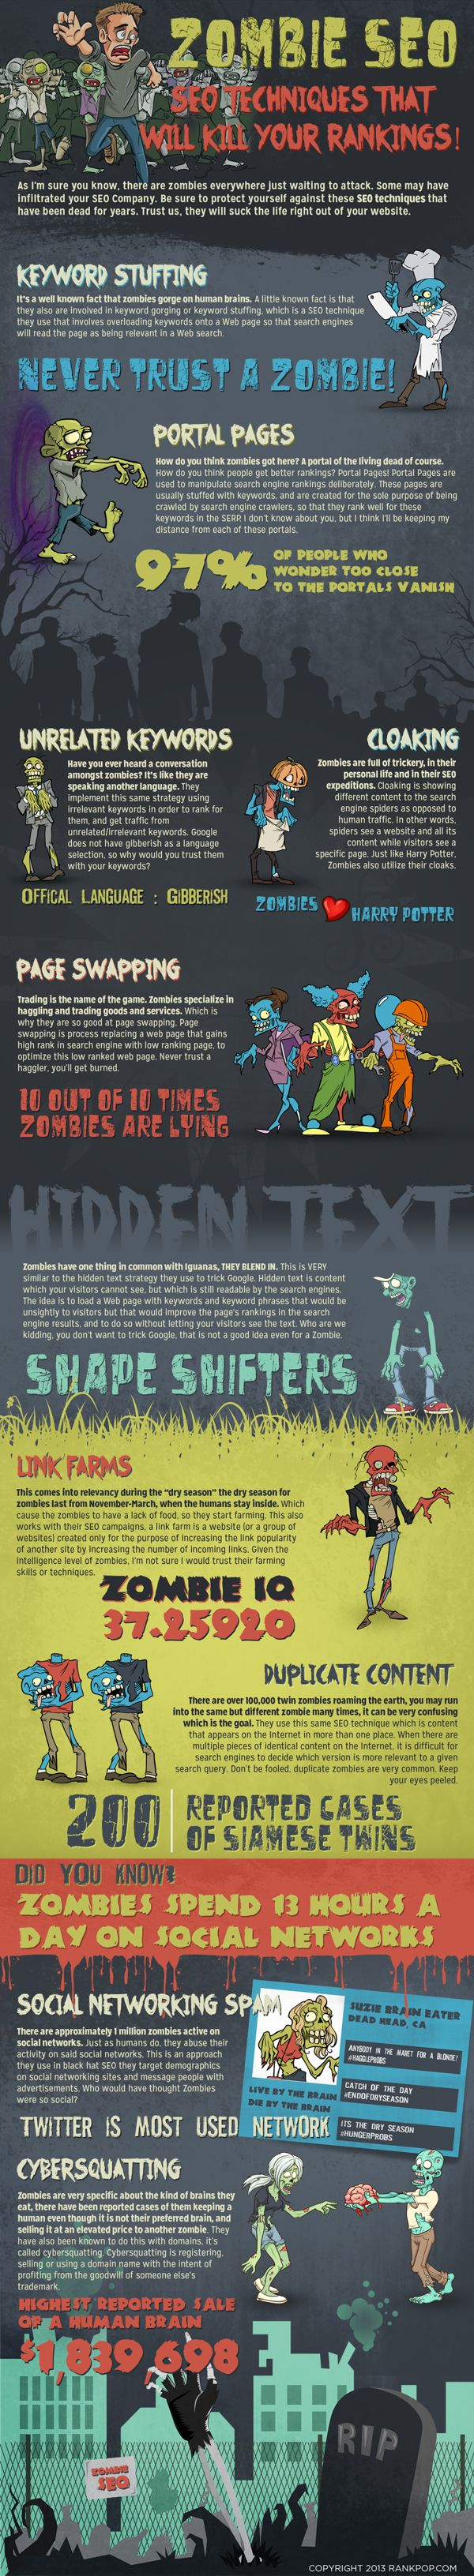 Zombie SEO by Megan Heck, via Behance